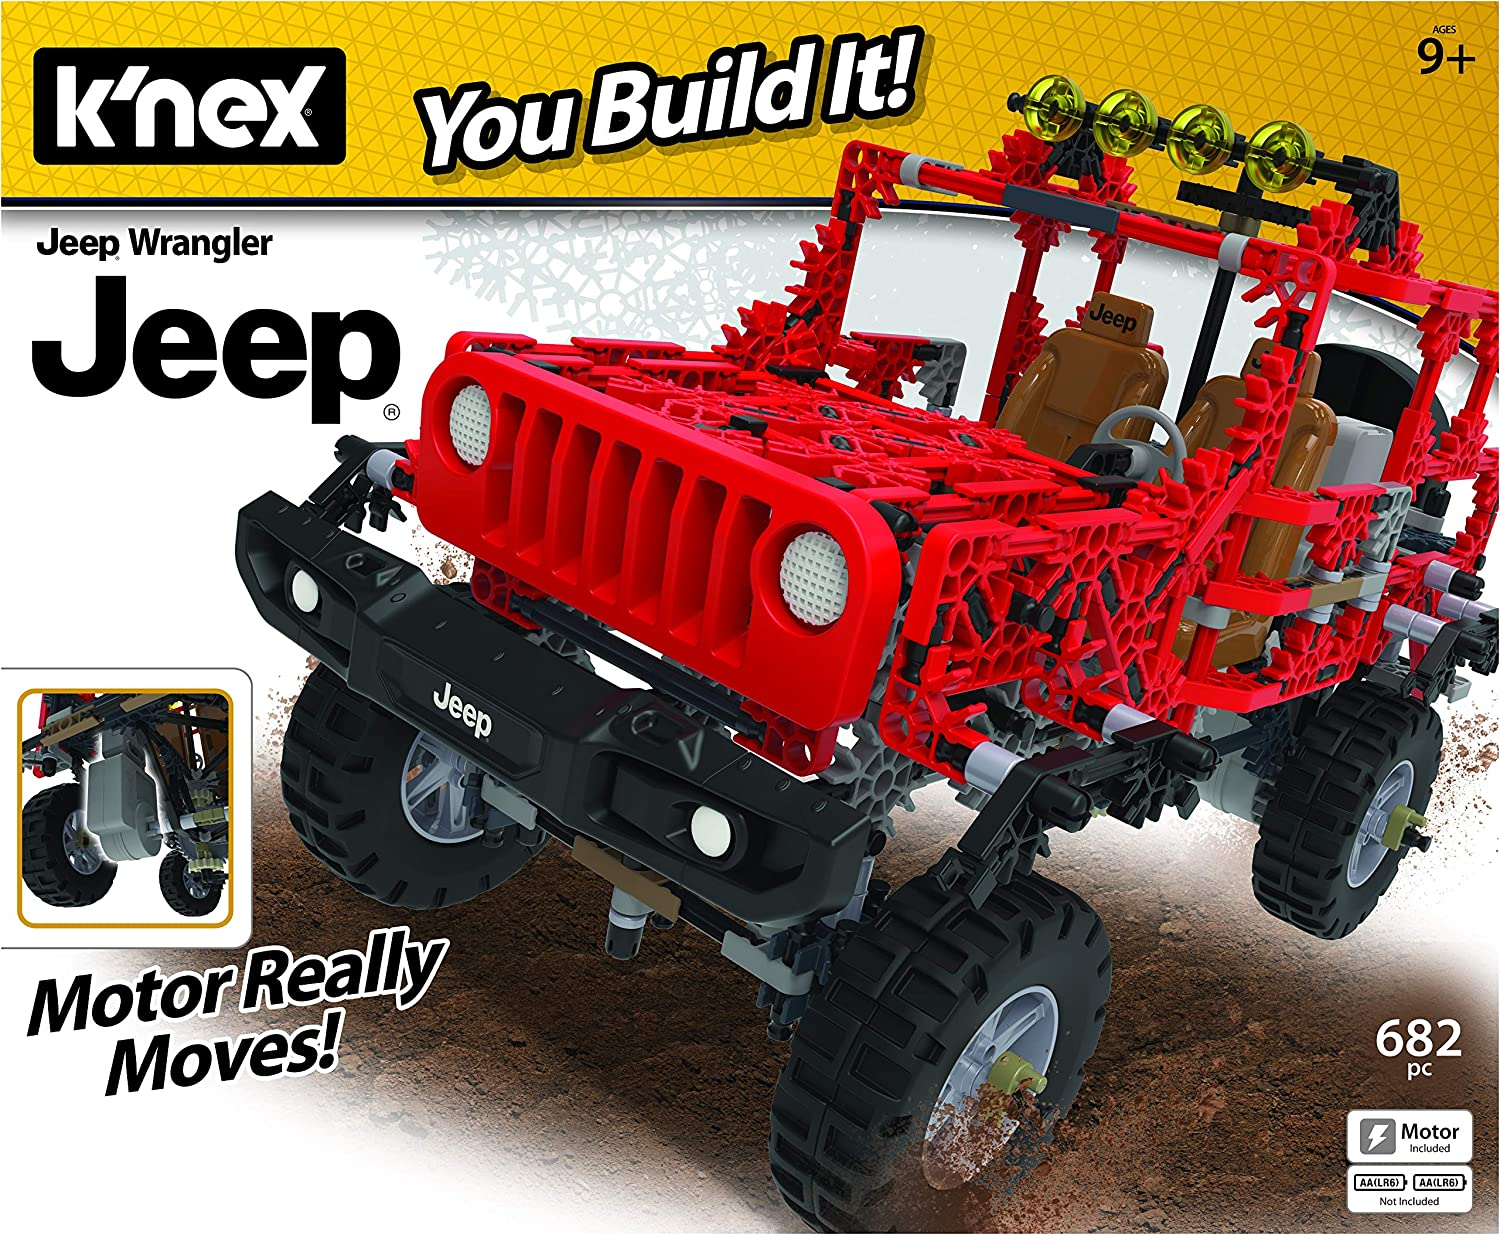 Build A Jeep >> K Nex Jeep Wrangler Building Set 682 Parts Authentic Battery Powered Motorized Replica Stem Toy Ages 7 Up